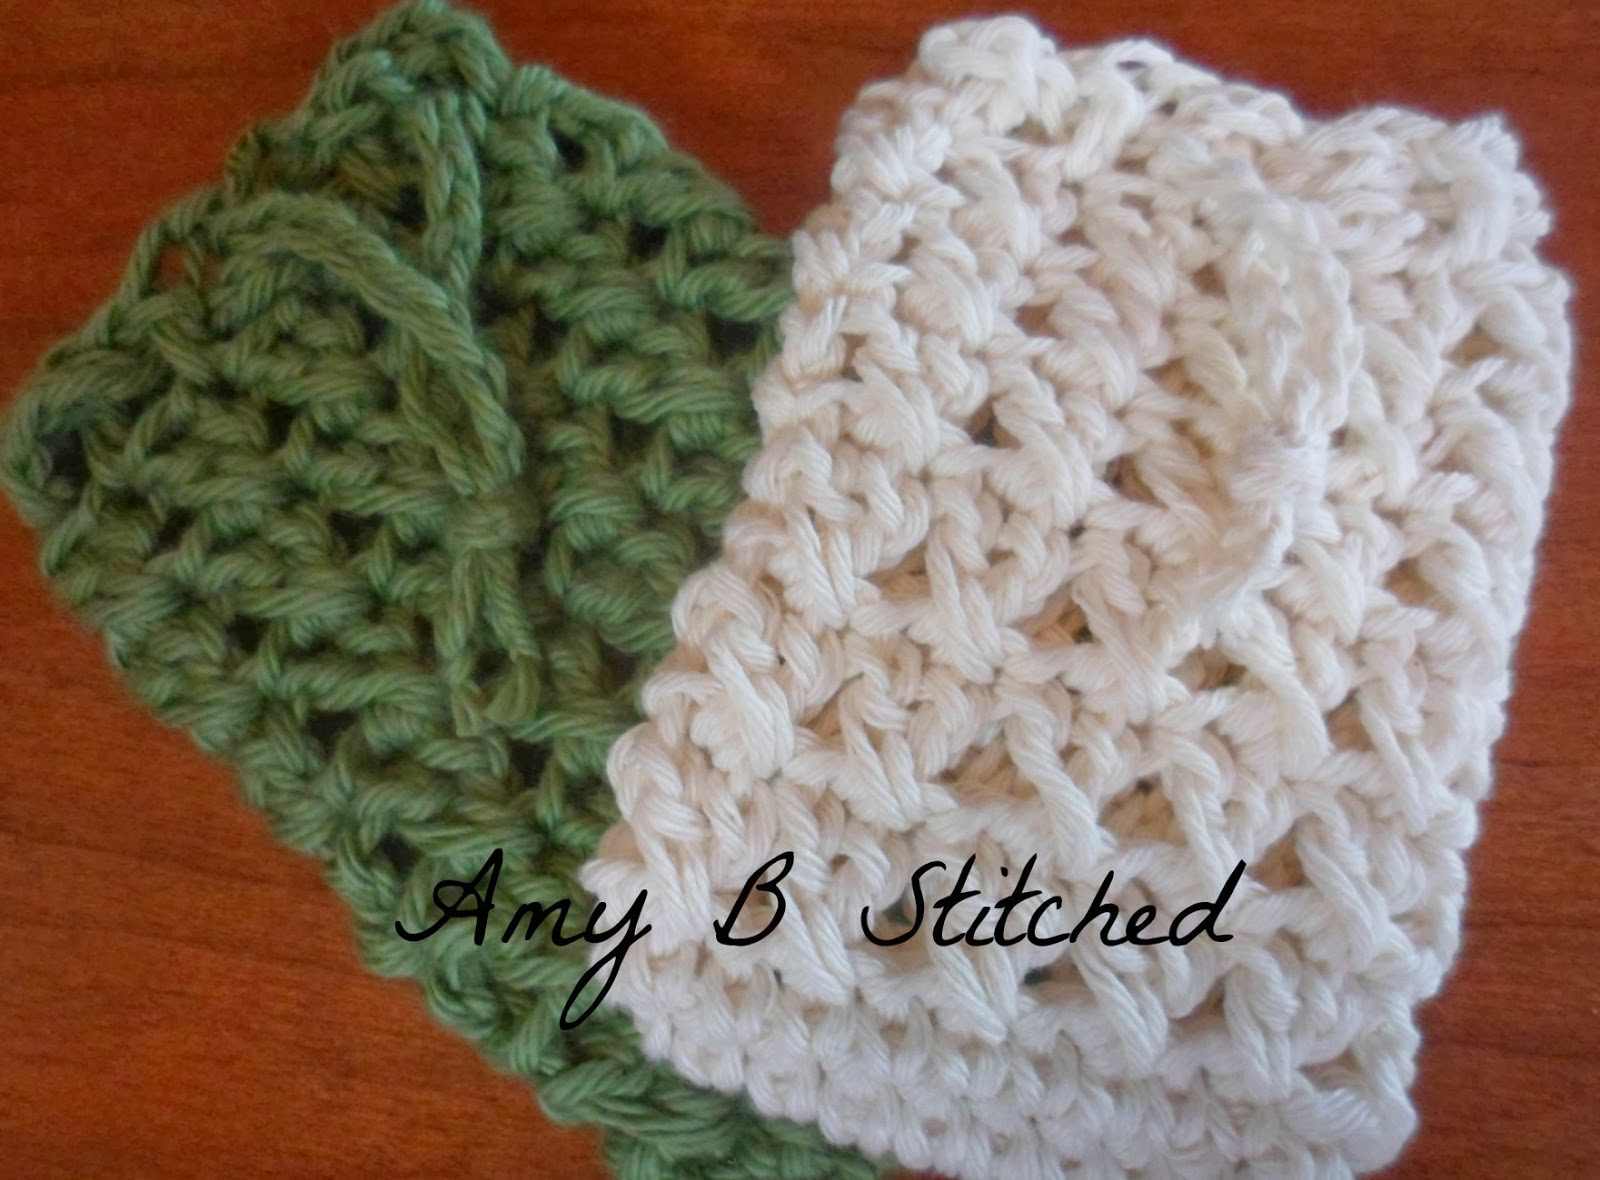 Free Crochet Pattern Soap Bag : A Stitch At A Time for Amy B Stitched: Cross Stitch Soap ...